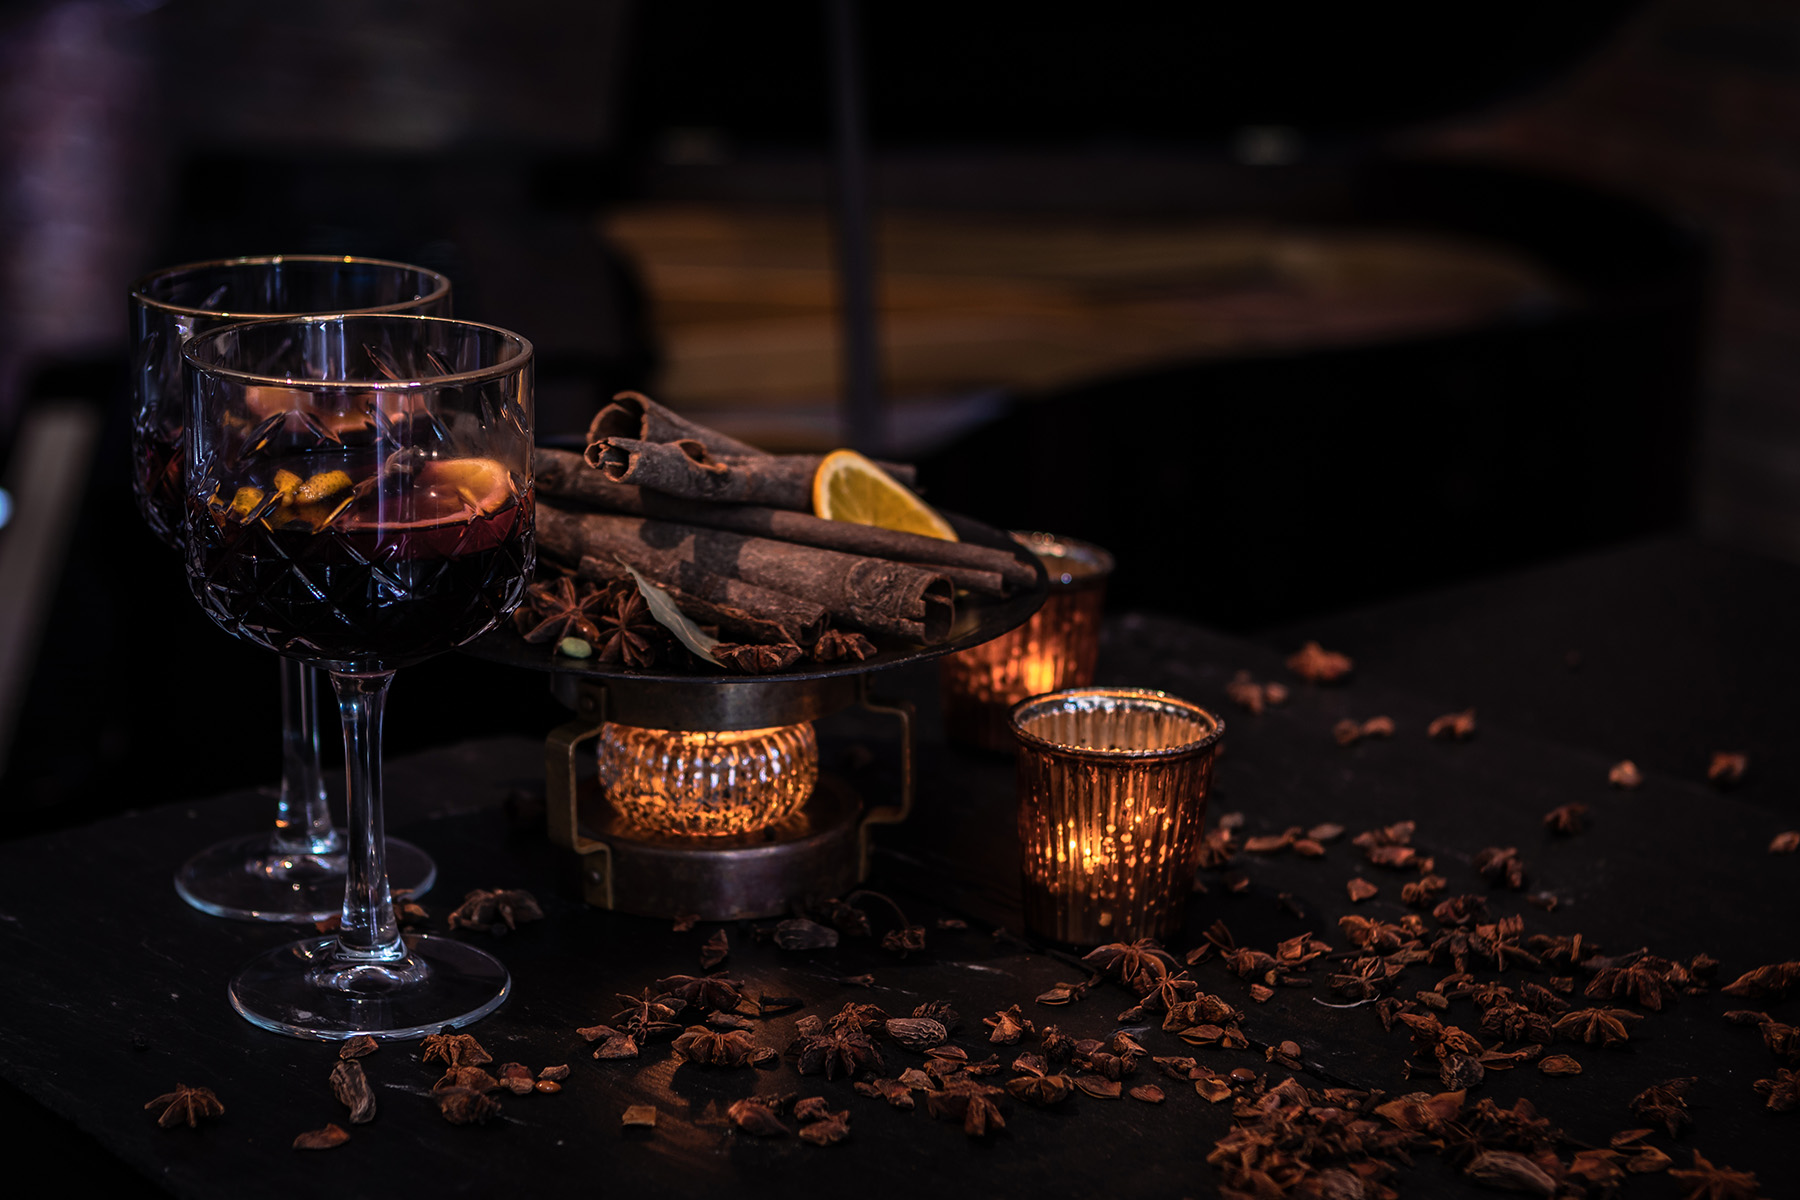 Christmas drinks and mulled wine on table with leaves, candle and cinnamon sticks